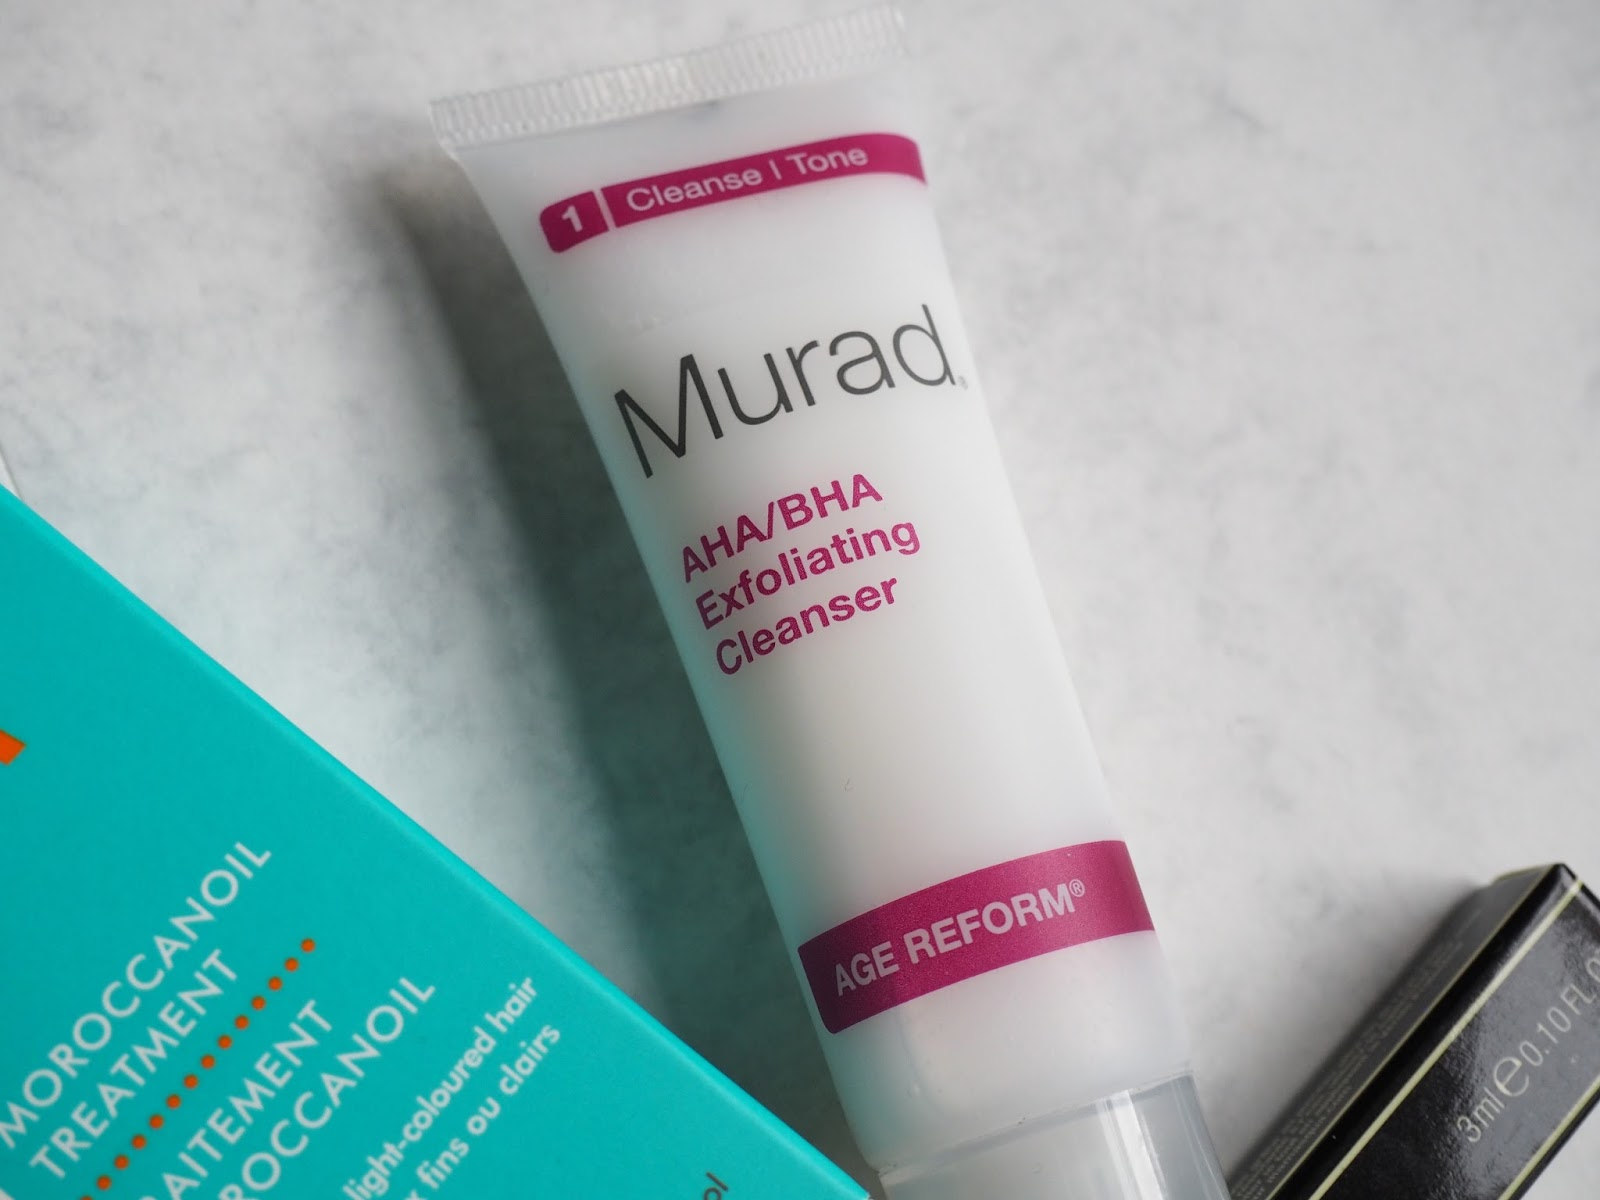 Murad Glamour Spring edit beauty box review Latest in Beauty